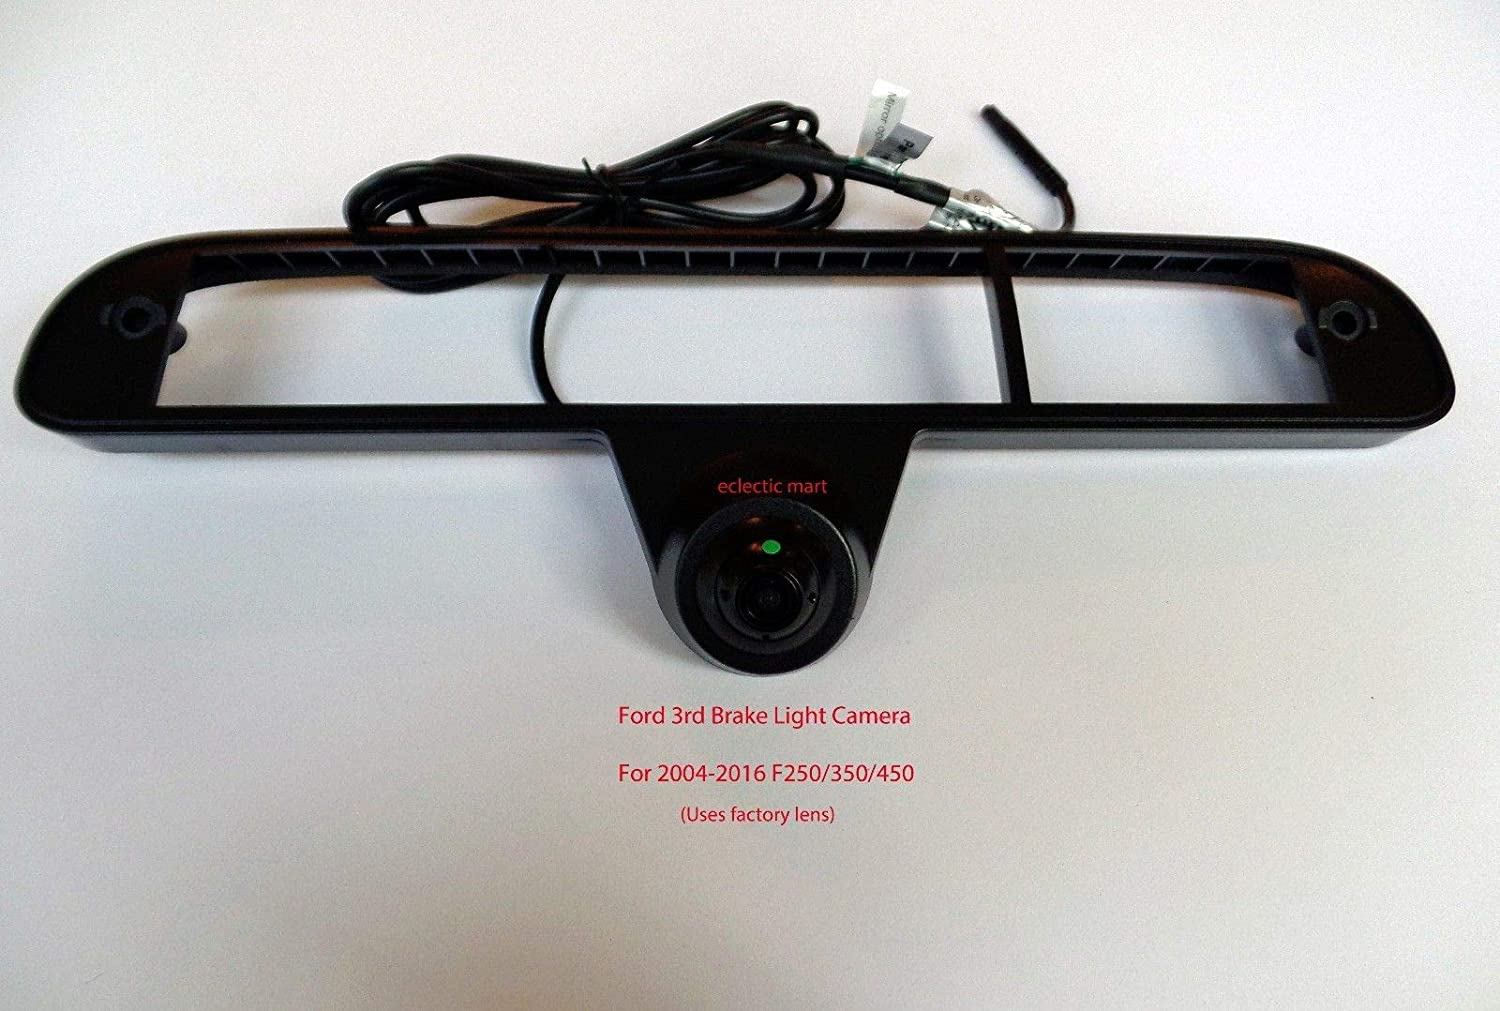 Truck Must Have a Factory Tailgate Handle Camera Plug /& Play T Harness Switcher 1999-2016 Ford F250 // F350 // F450 3rd Brake Light Cargo Camera to Factory Radio SYNC 2 /& SYNC 3 System 8 Screen